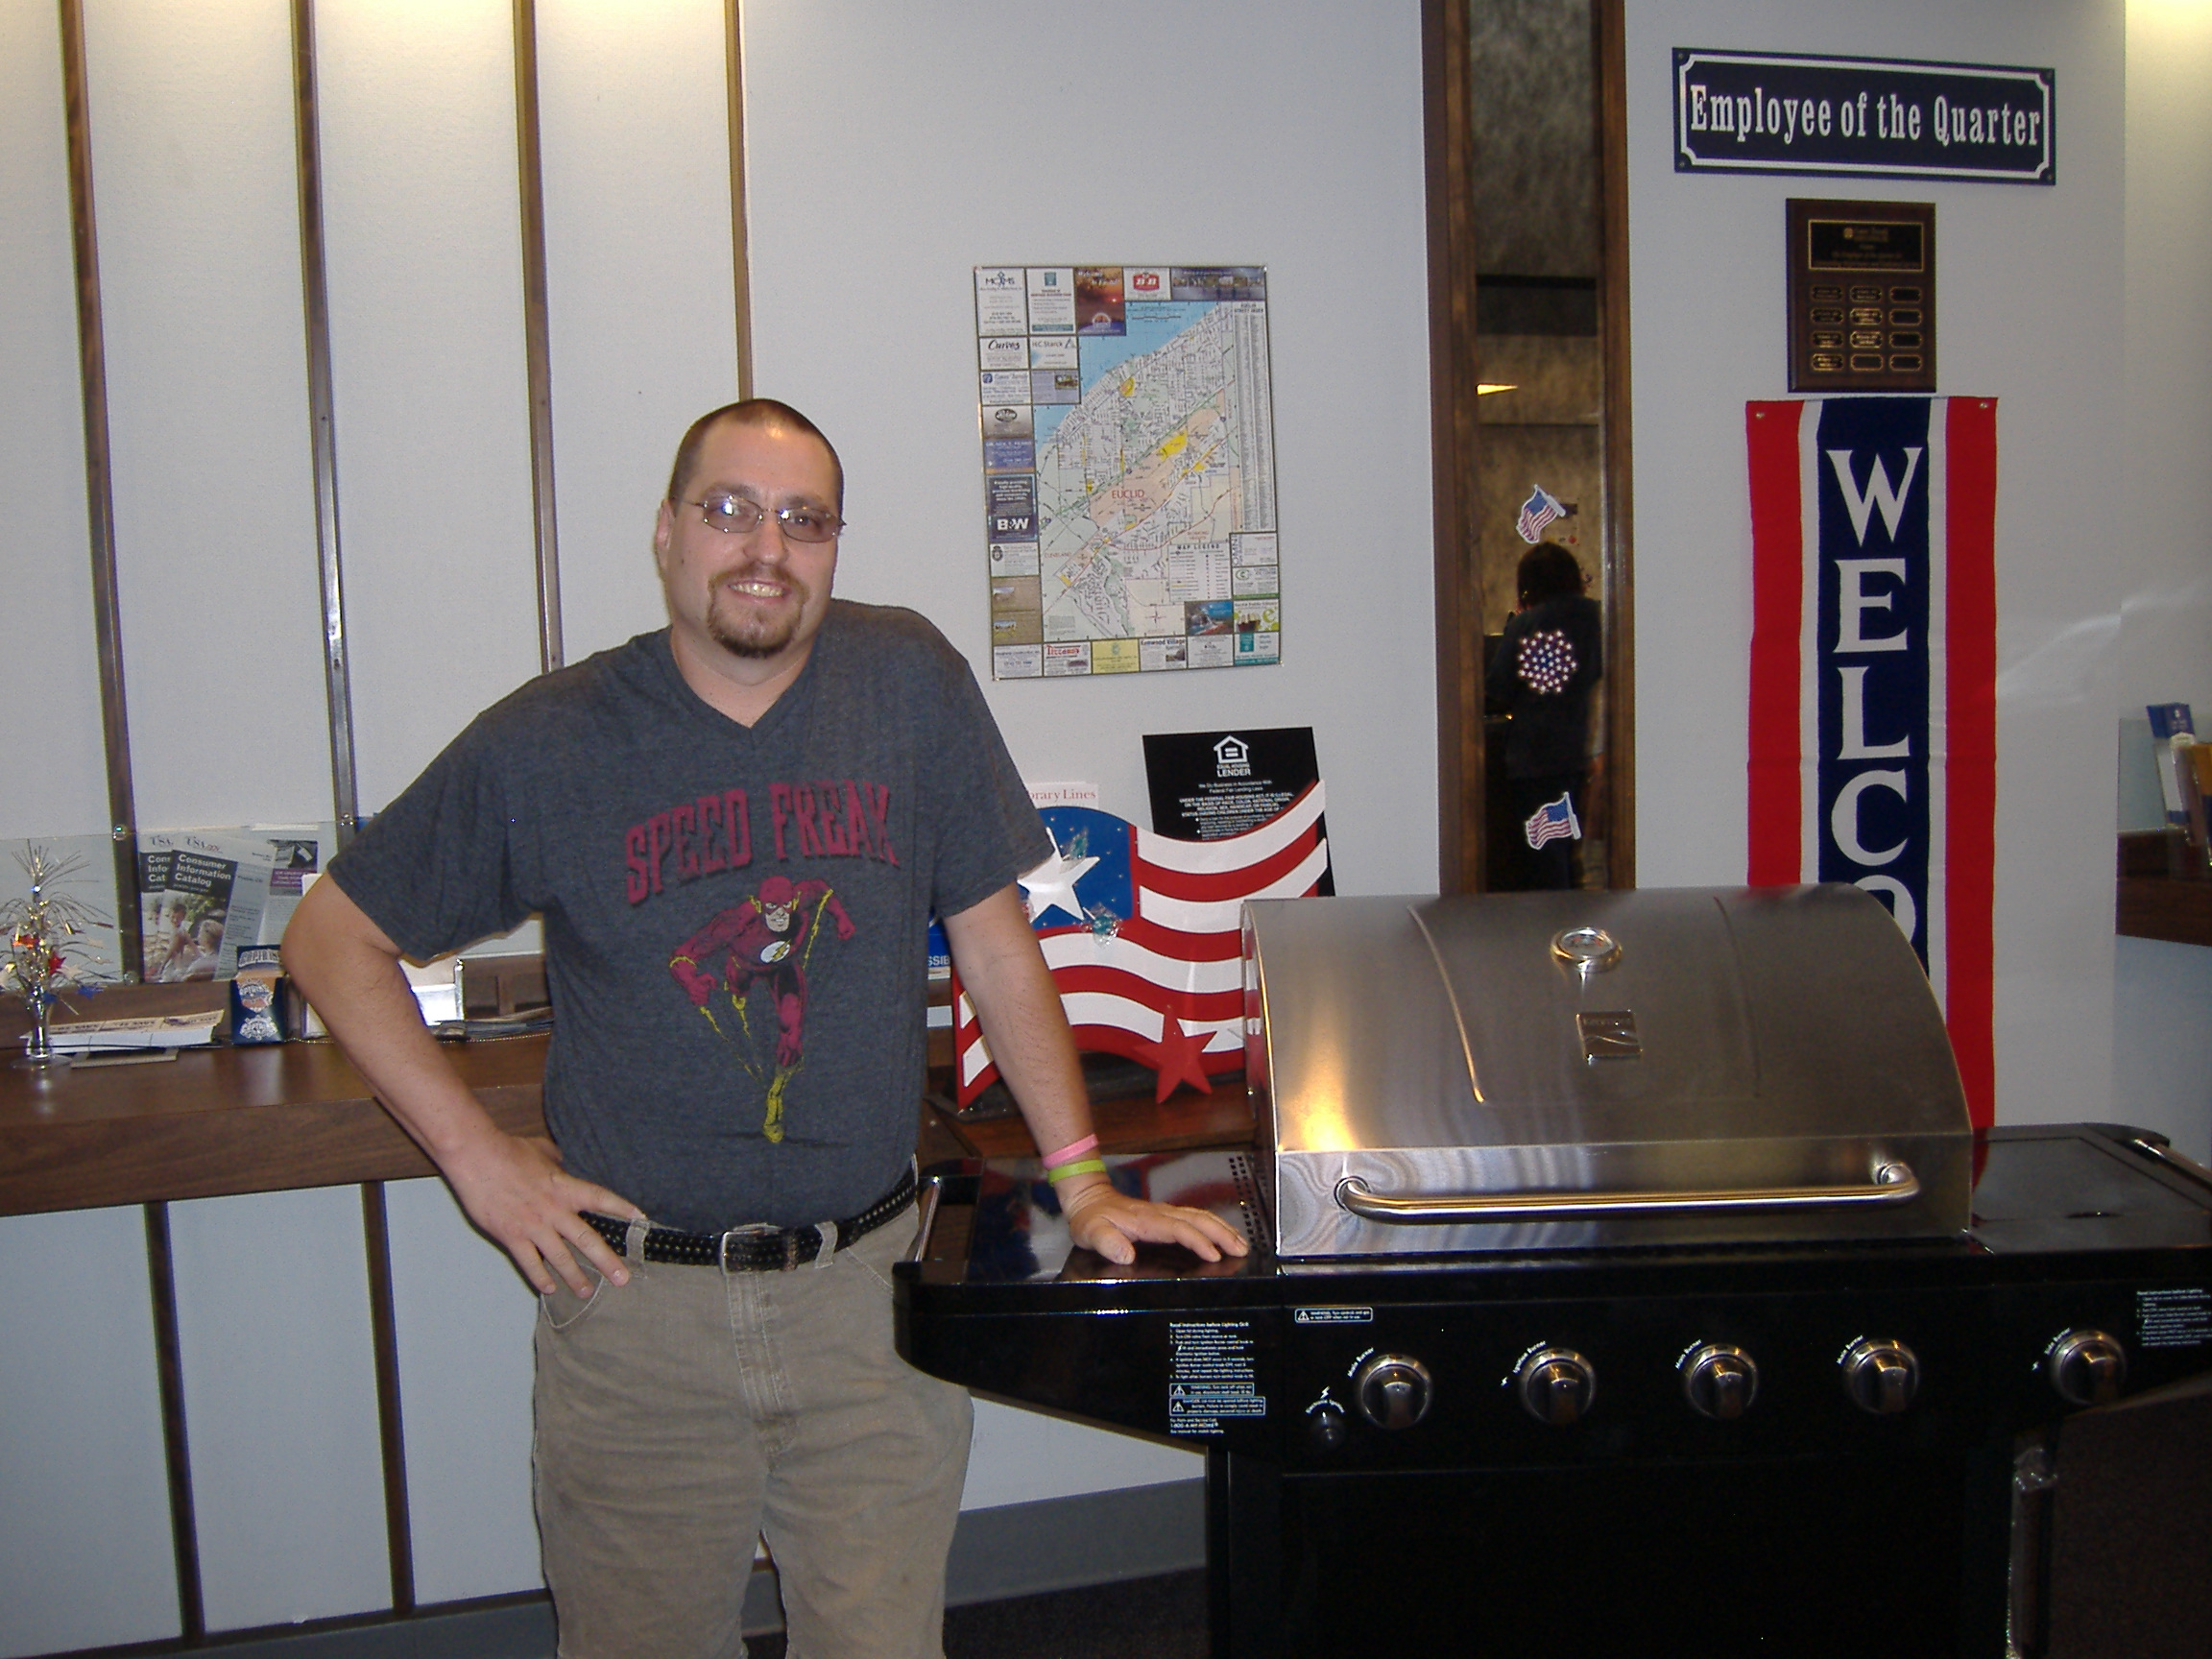 Patrick, from Cleveland, won the Kenmore grill donated by Sears